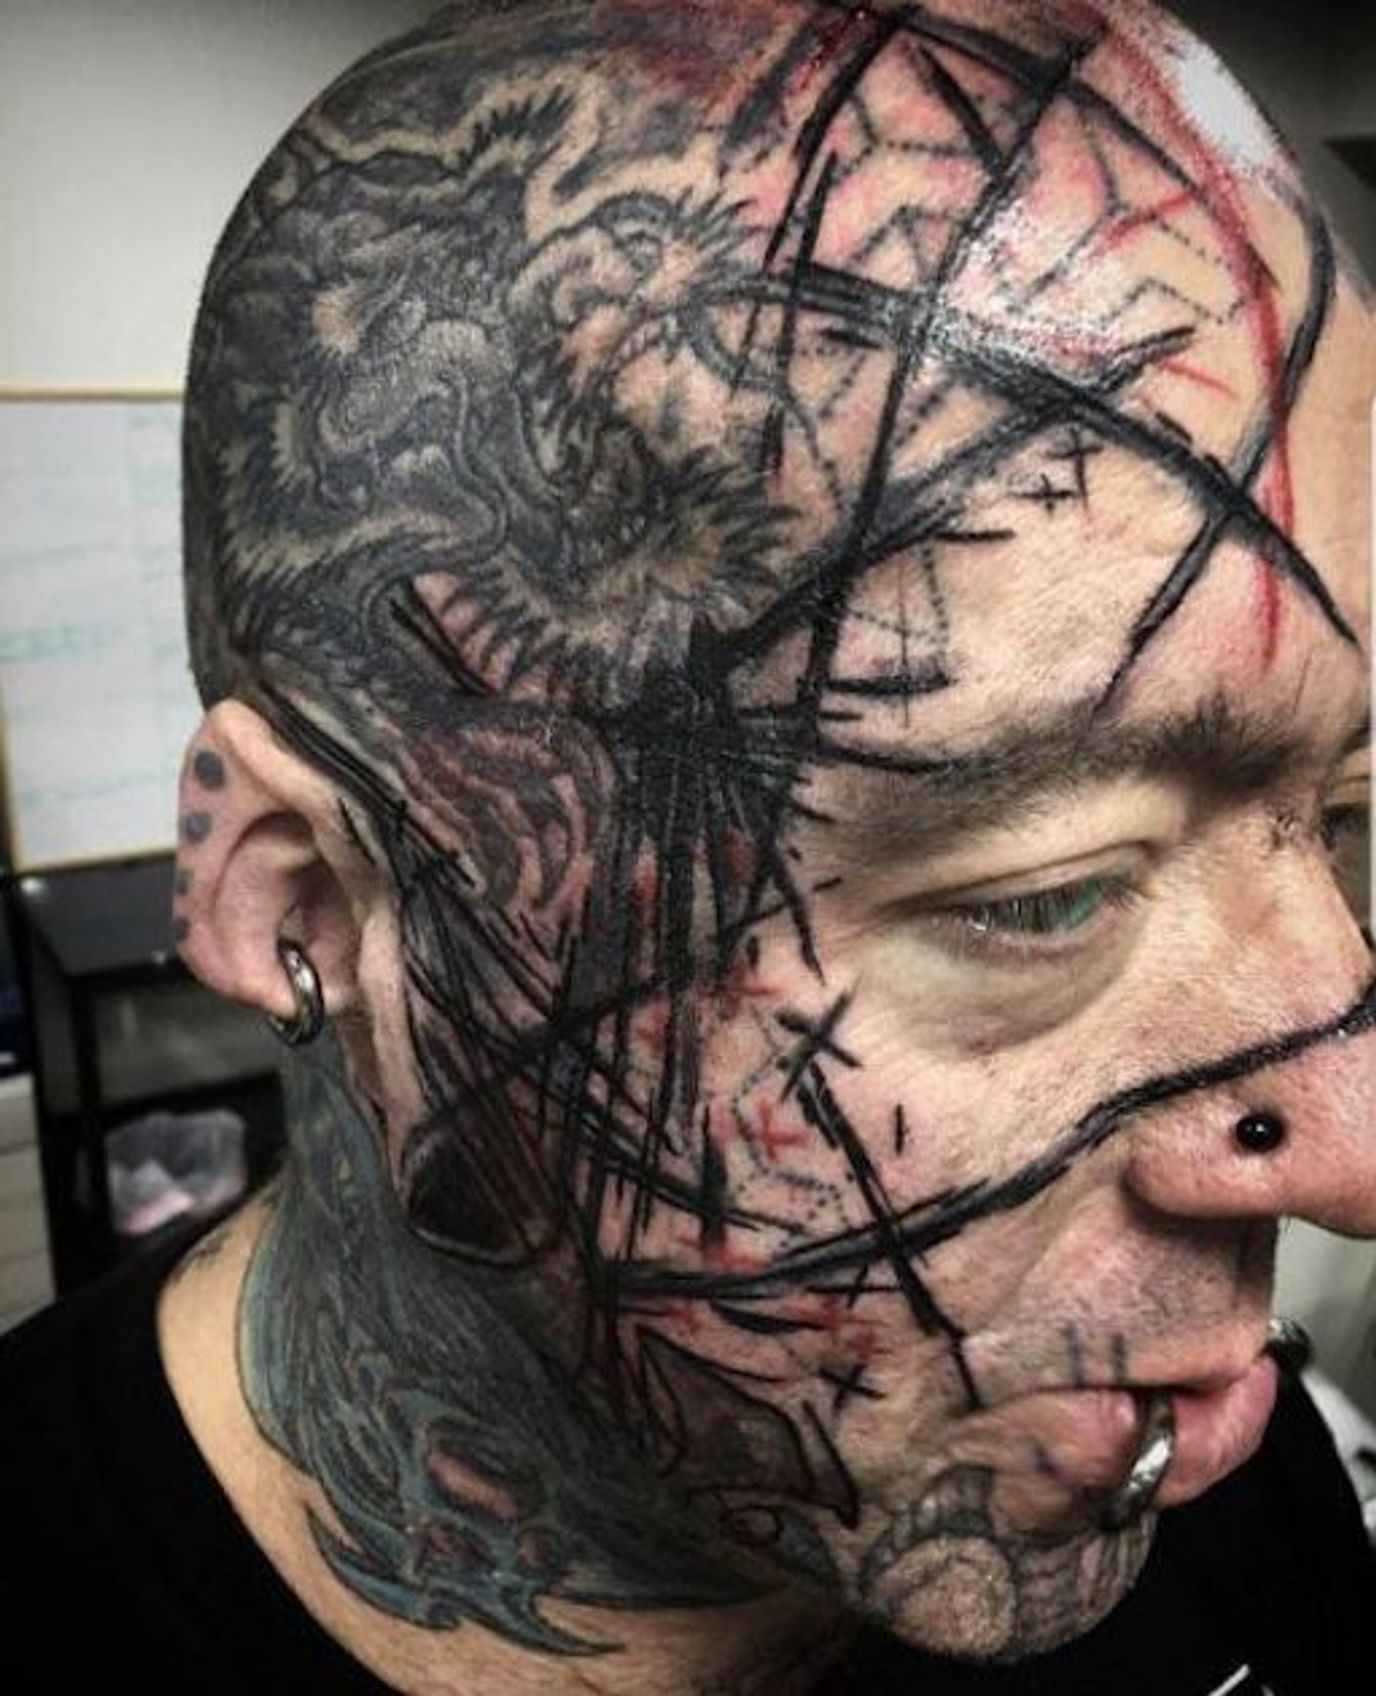 Worst Face Tattoos The Most Regrettable Face Tattoos of